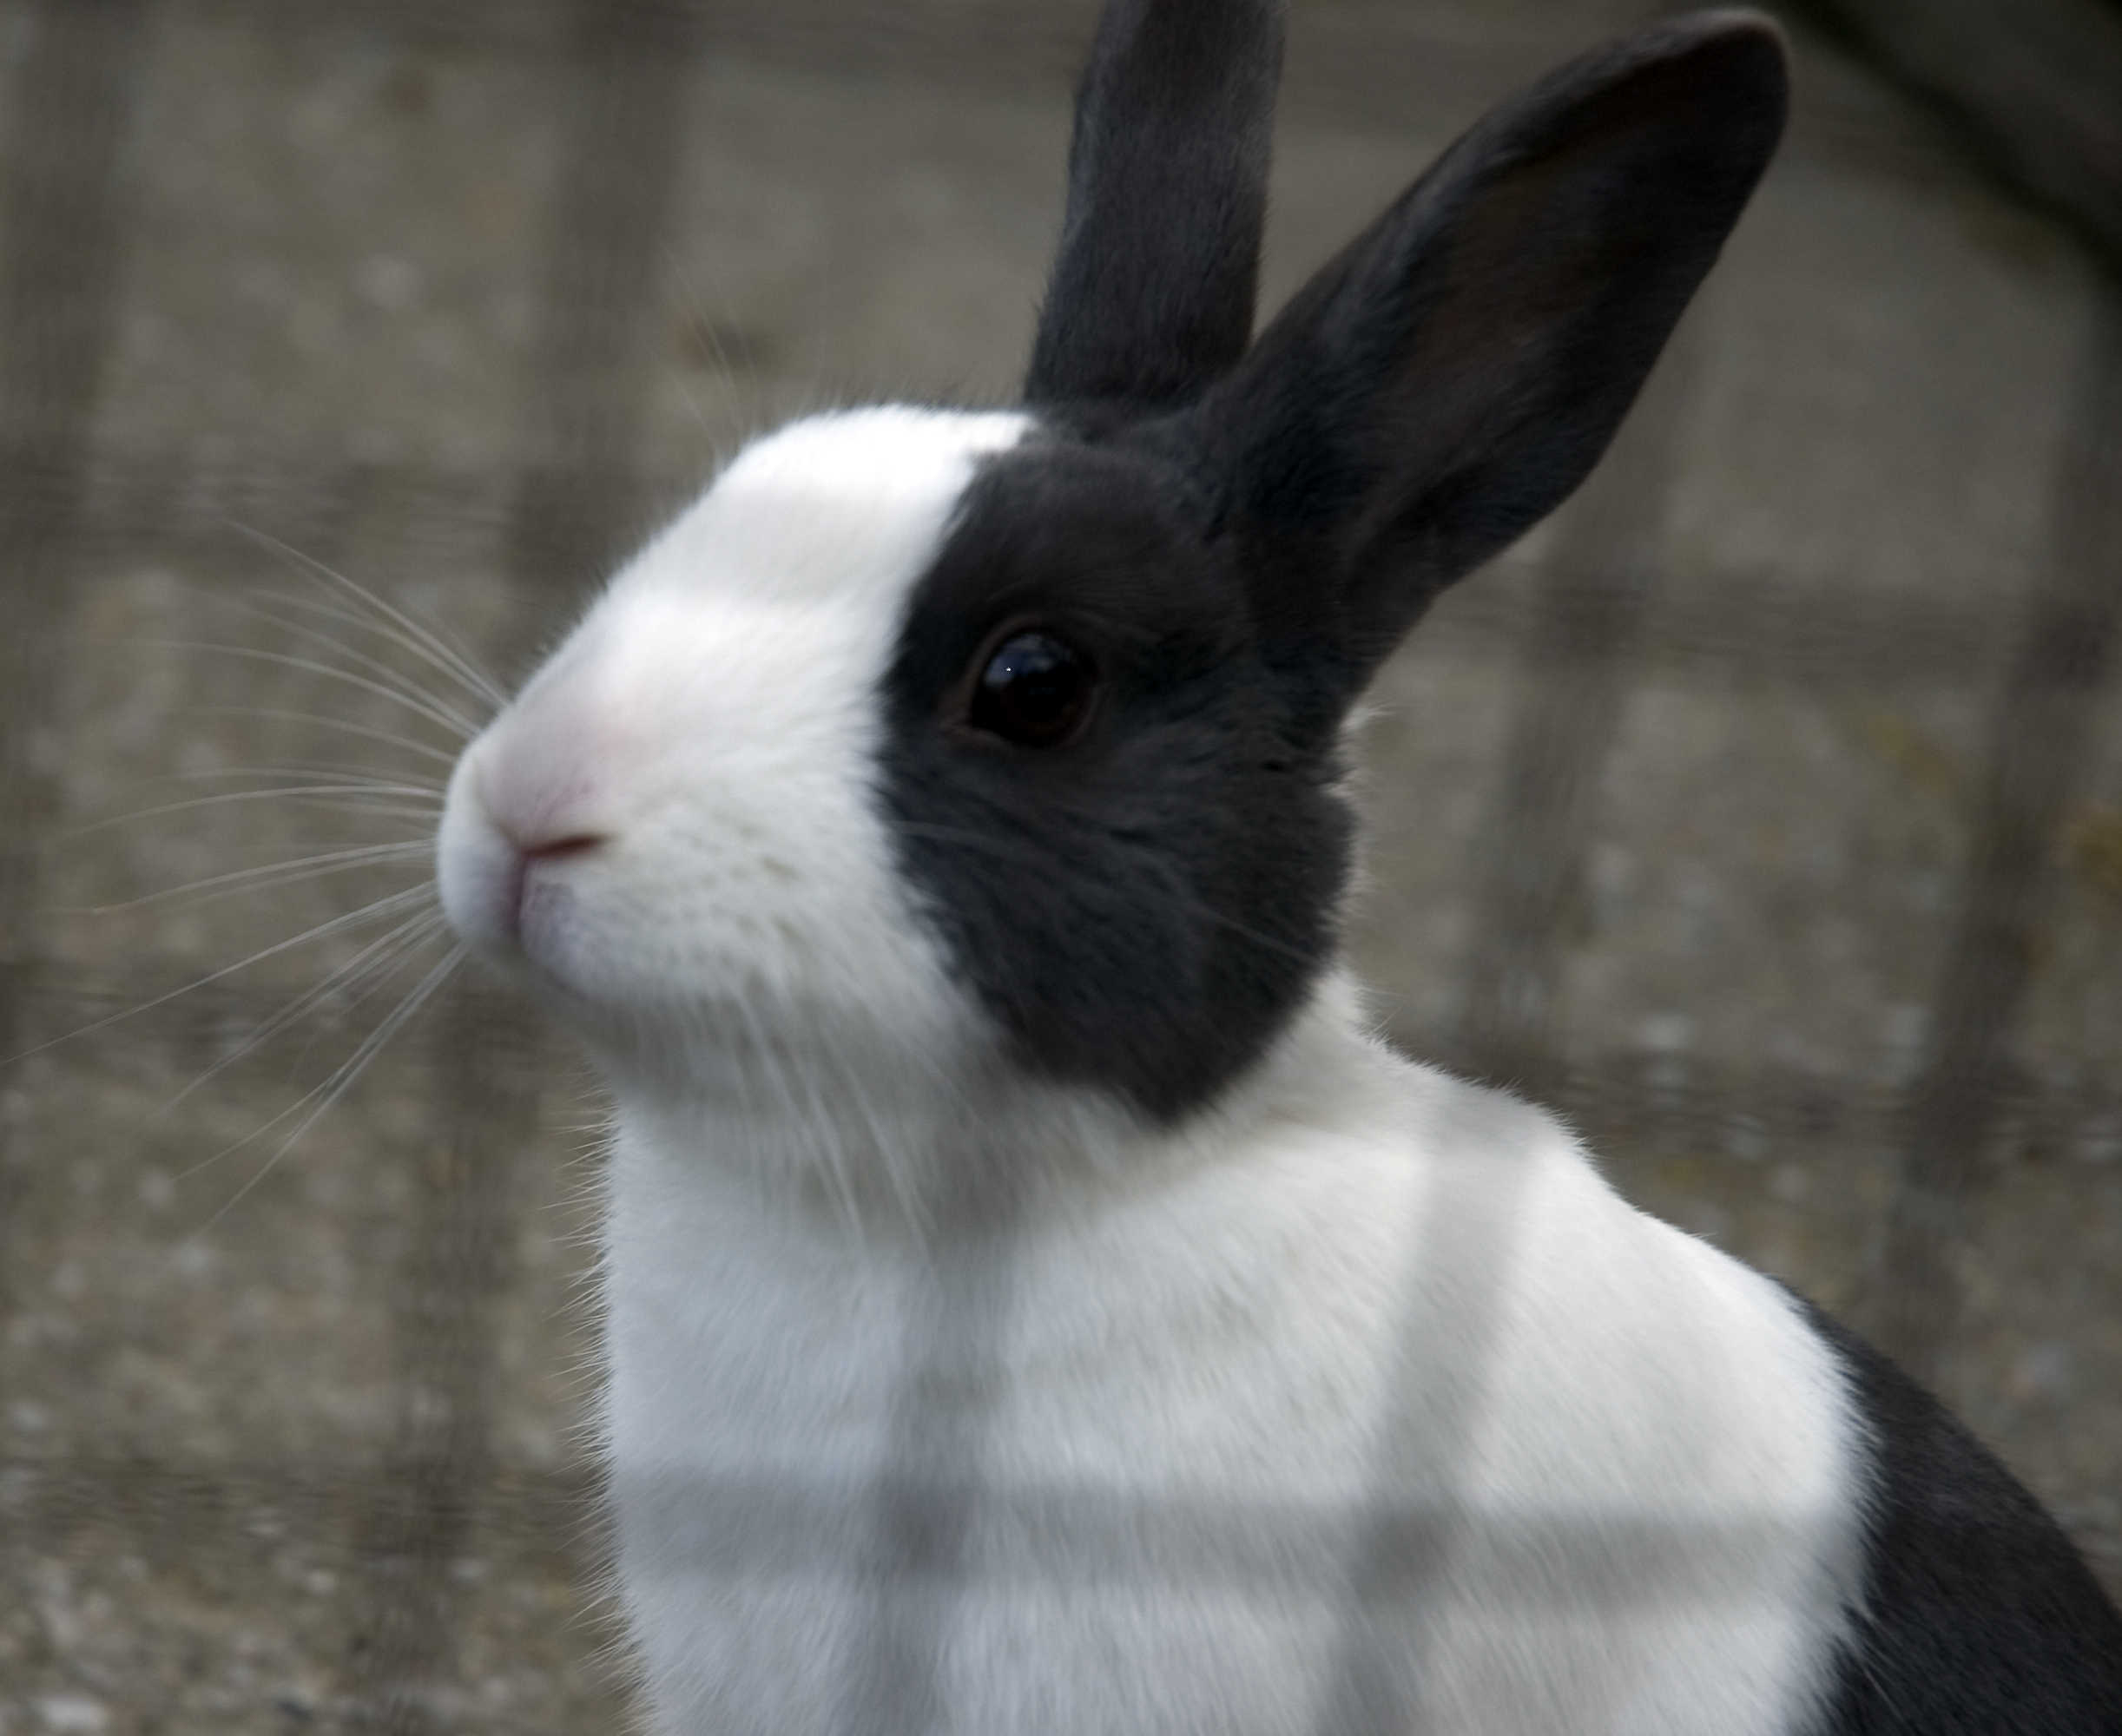 Looking after your pet rabbit